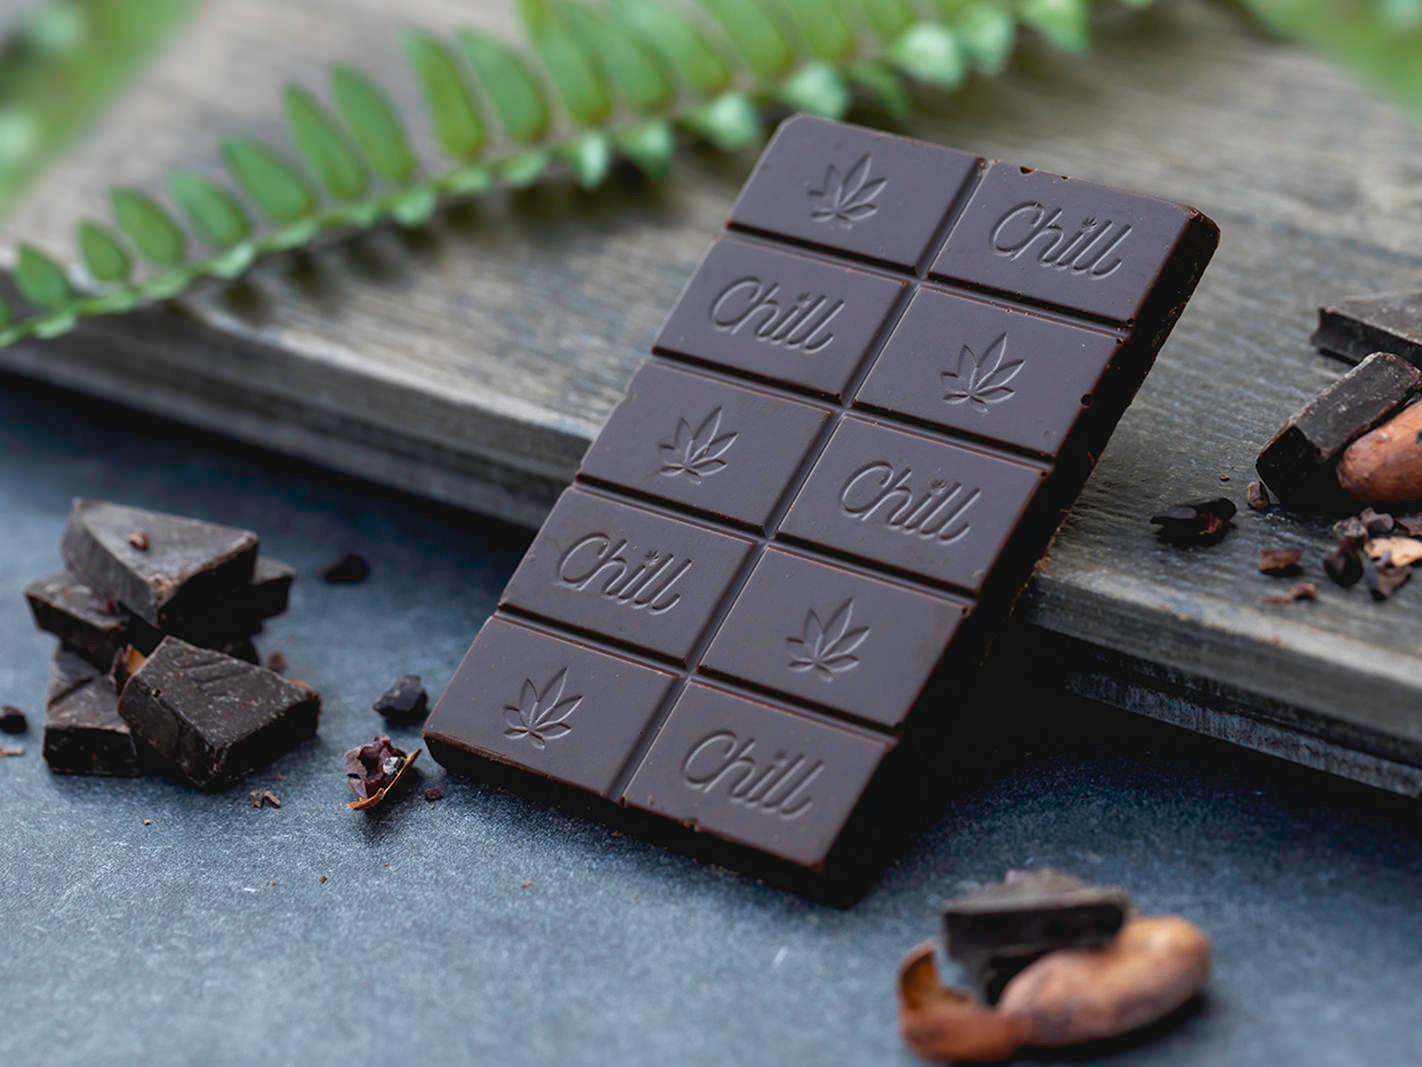 Chill, the Highest Chocolate - Ethically-sourced, premium cannabis infused chocolate. When it comes to cannabis chocolate, we offer the highest experience. From cacao to cannabis, Chill is dedicated to quality, safety and social responsibility.